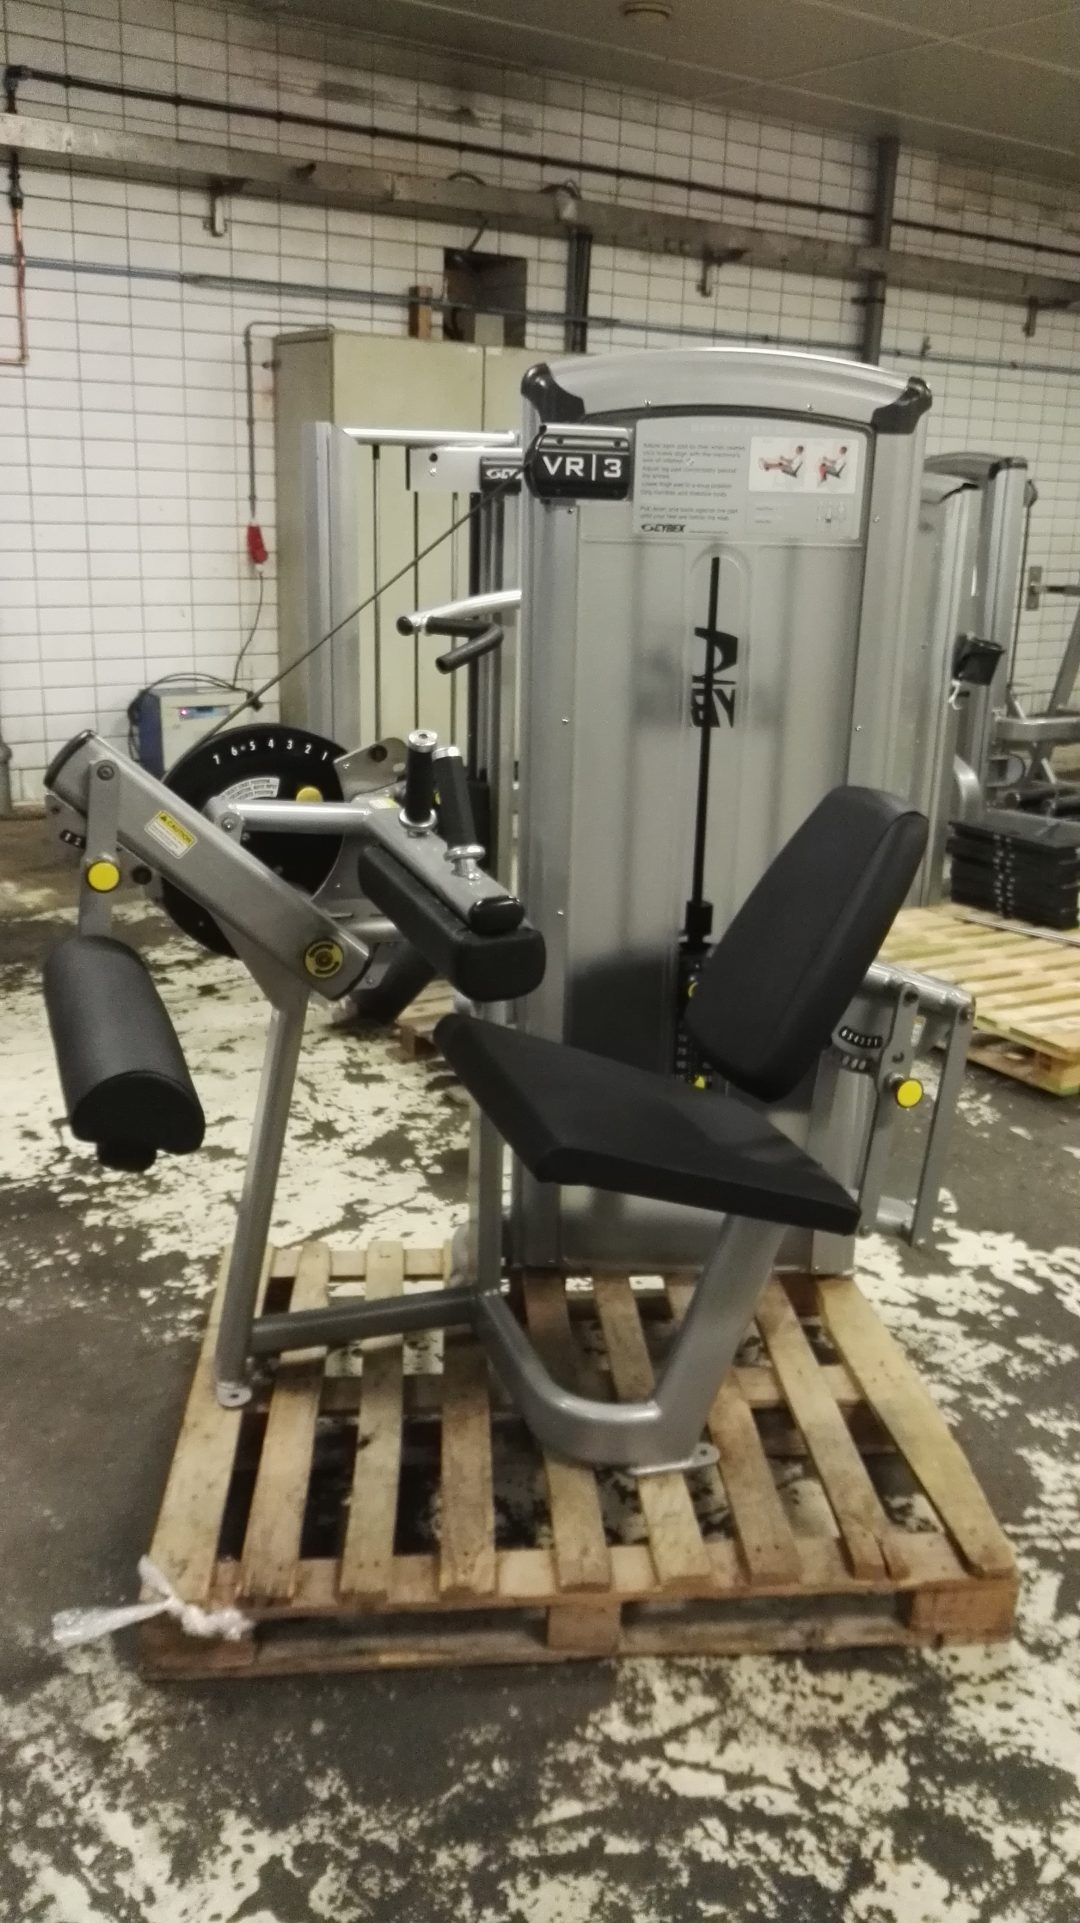 Cybex VR3 seated leg curl